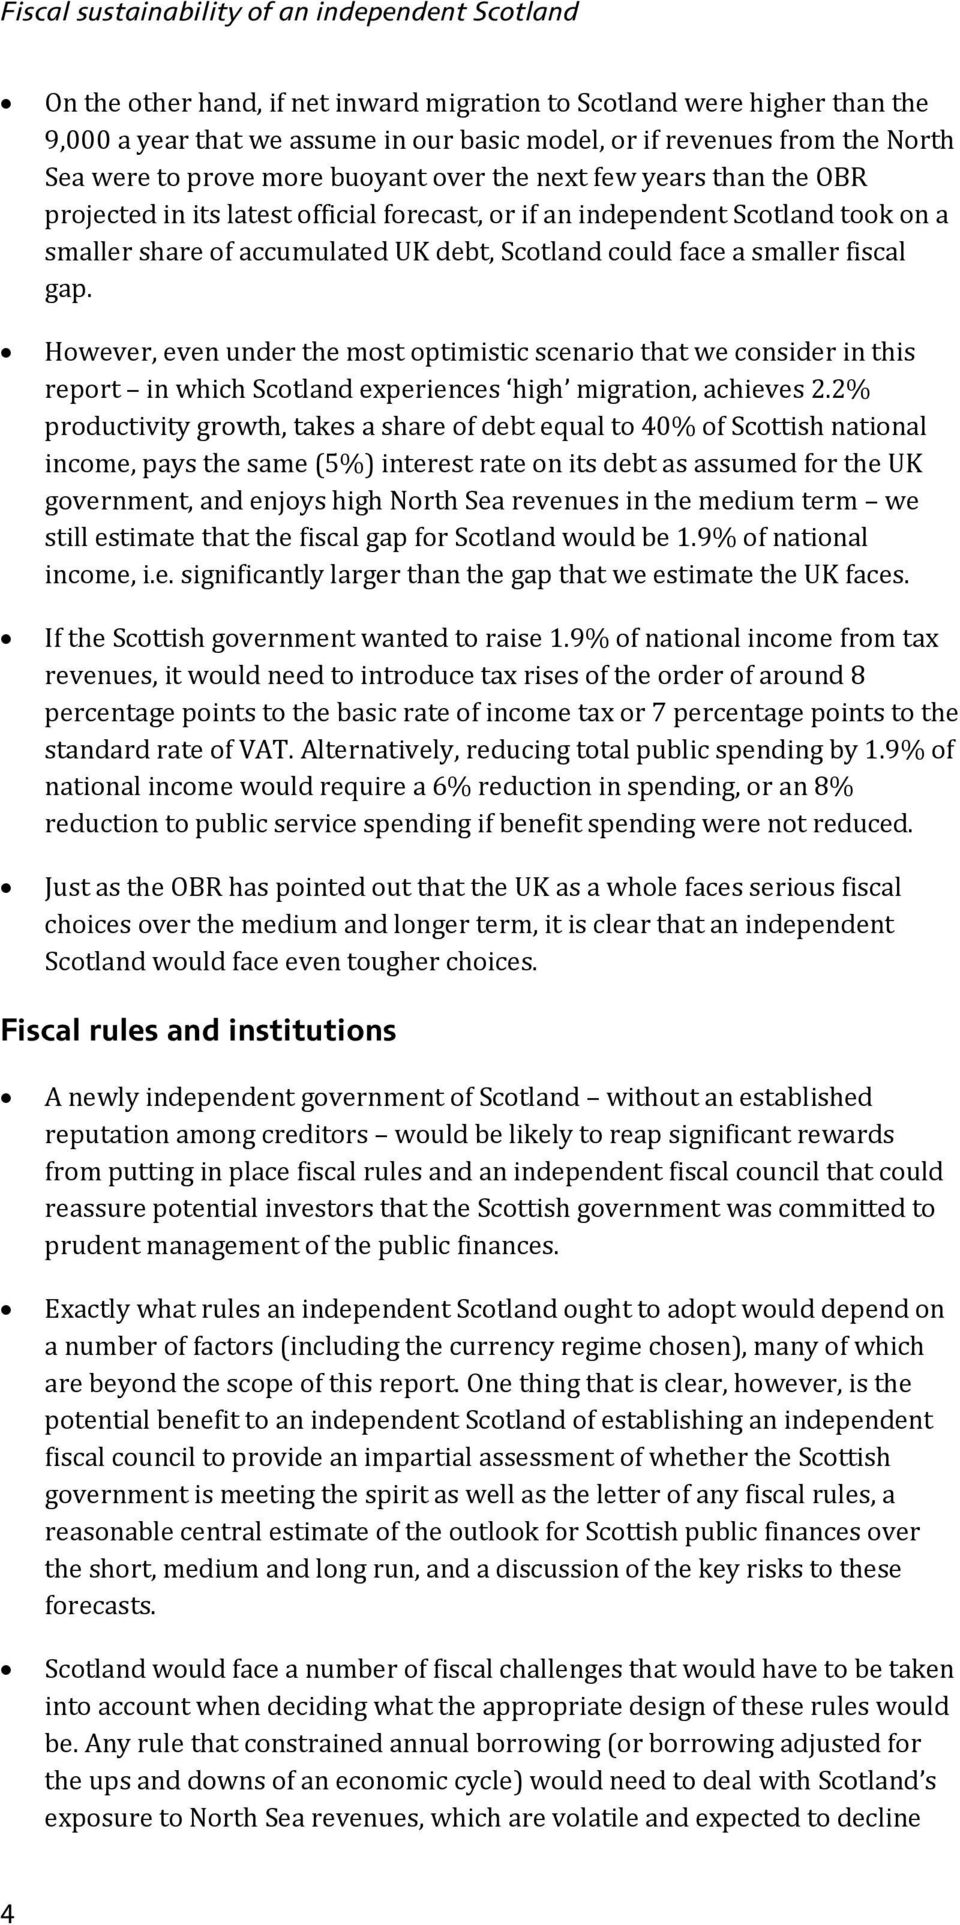 Scotland could face a smaller fiscal gap. However, even under the most optimistic scenario that we consider in this report in which Scotland experiences high migration, achieves 2.